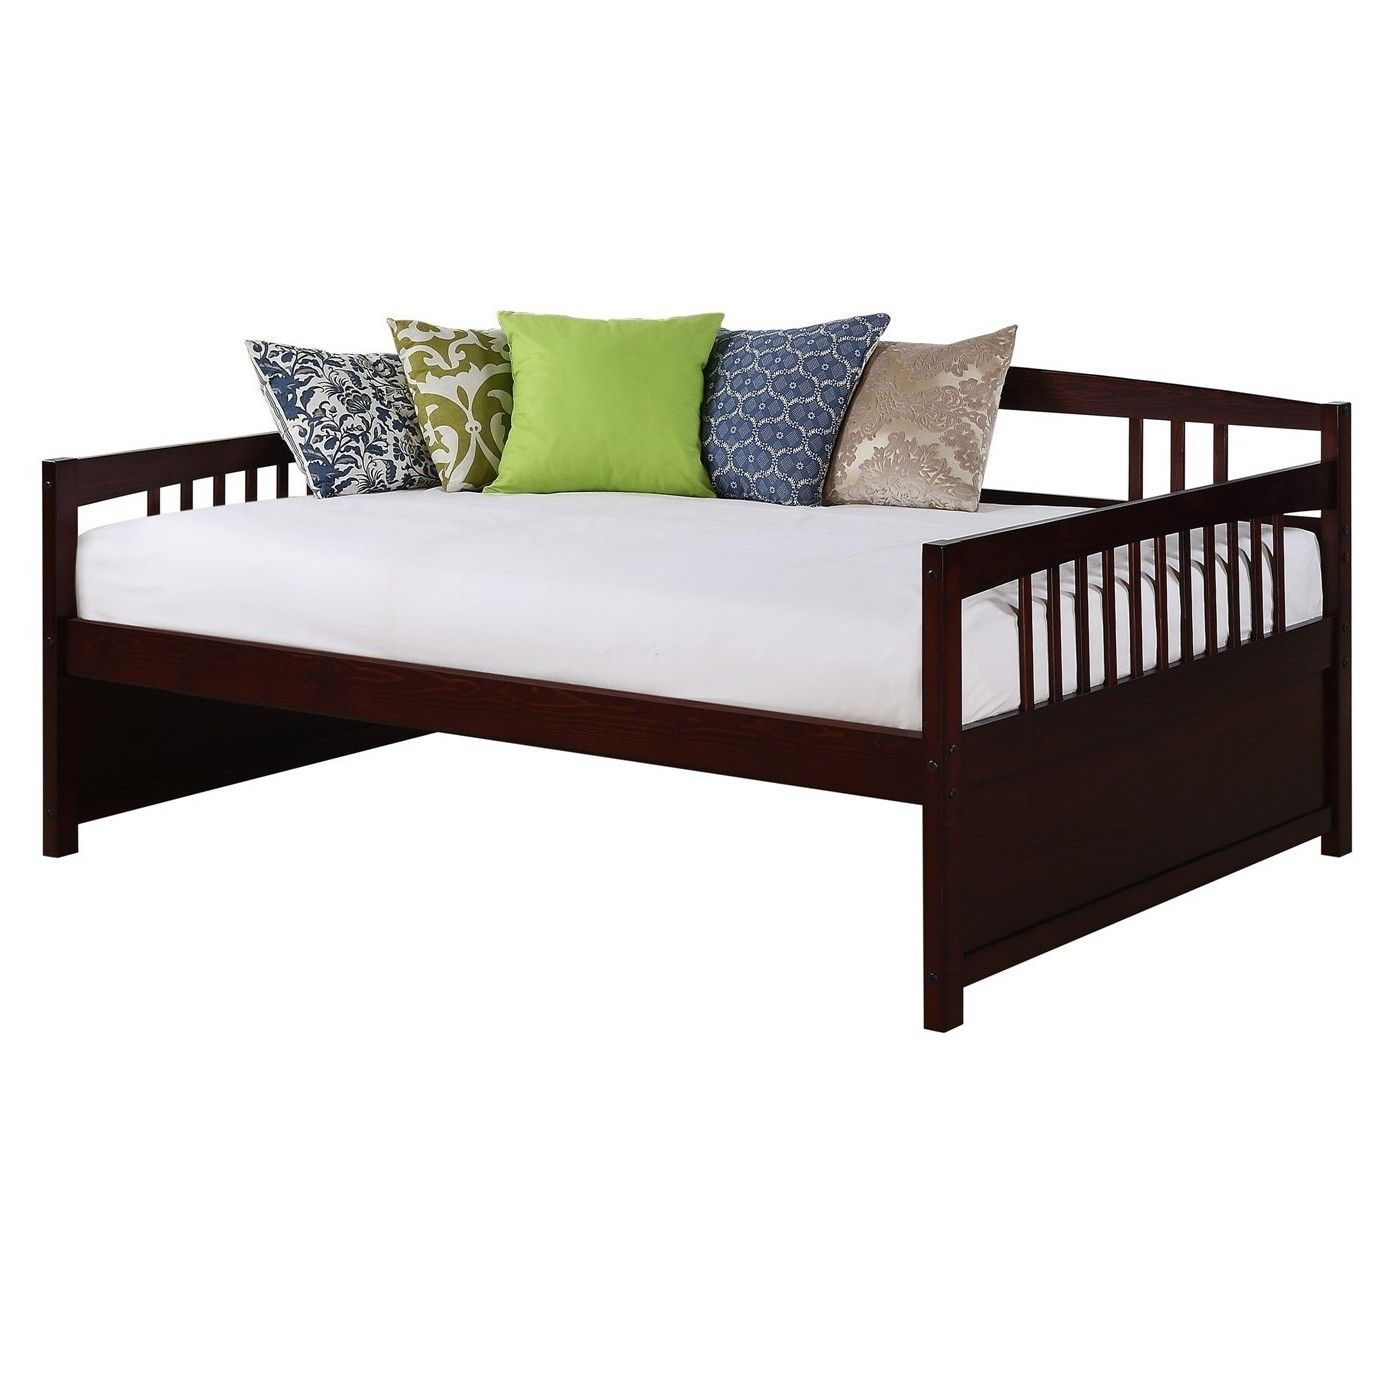 Full Clara Wood Daybed Espresso Dorel Living Full Size Daybed Wood Daybed Furniture